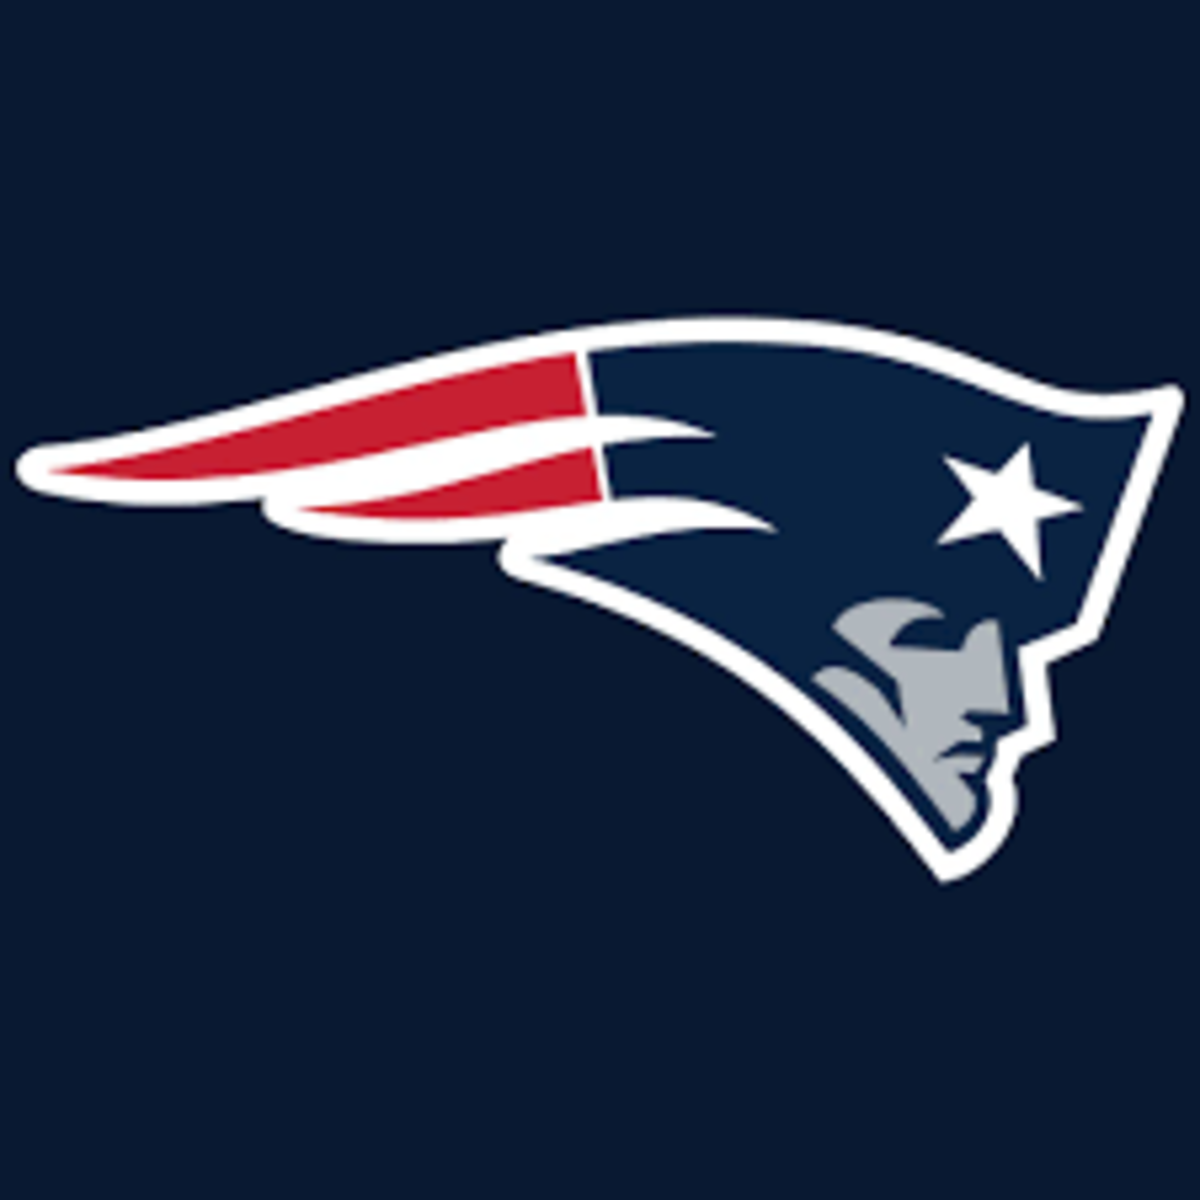 The Patriots are a part of the AFC East which also involves the Jets, Dolphins, and Bills.